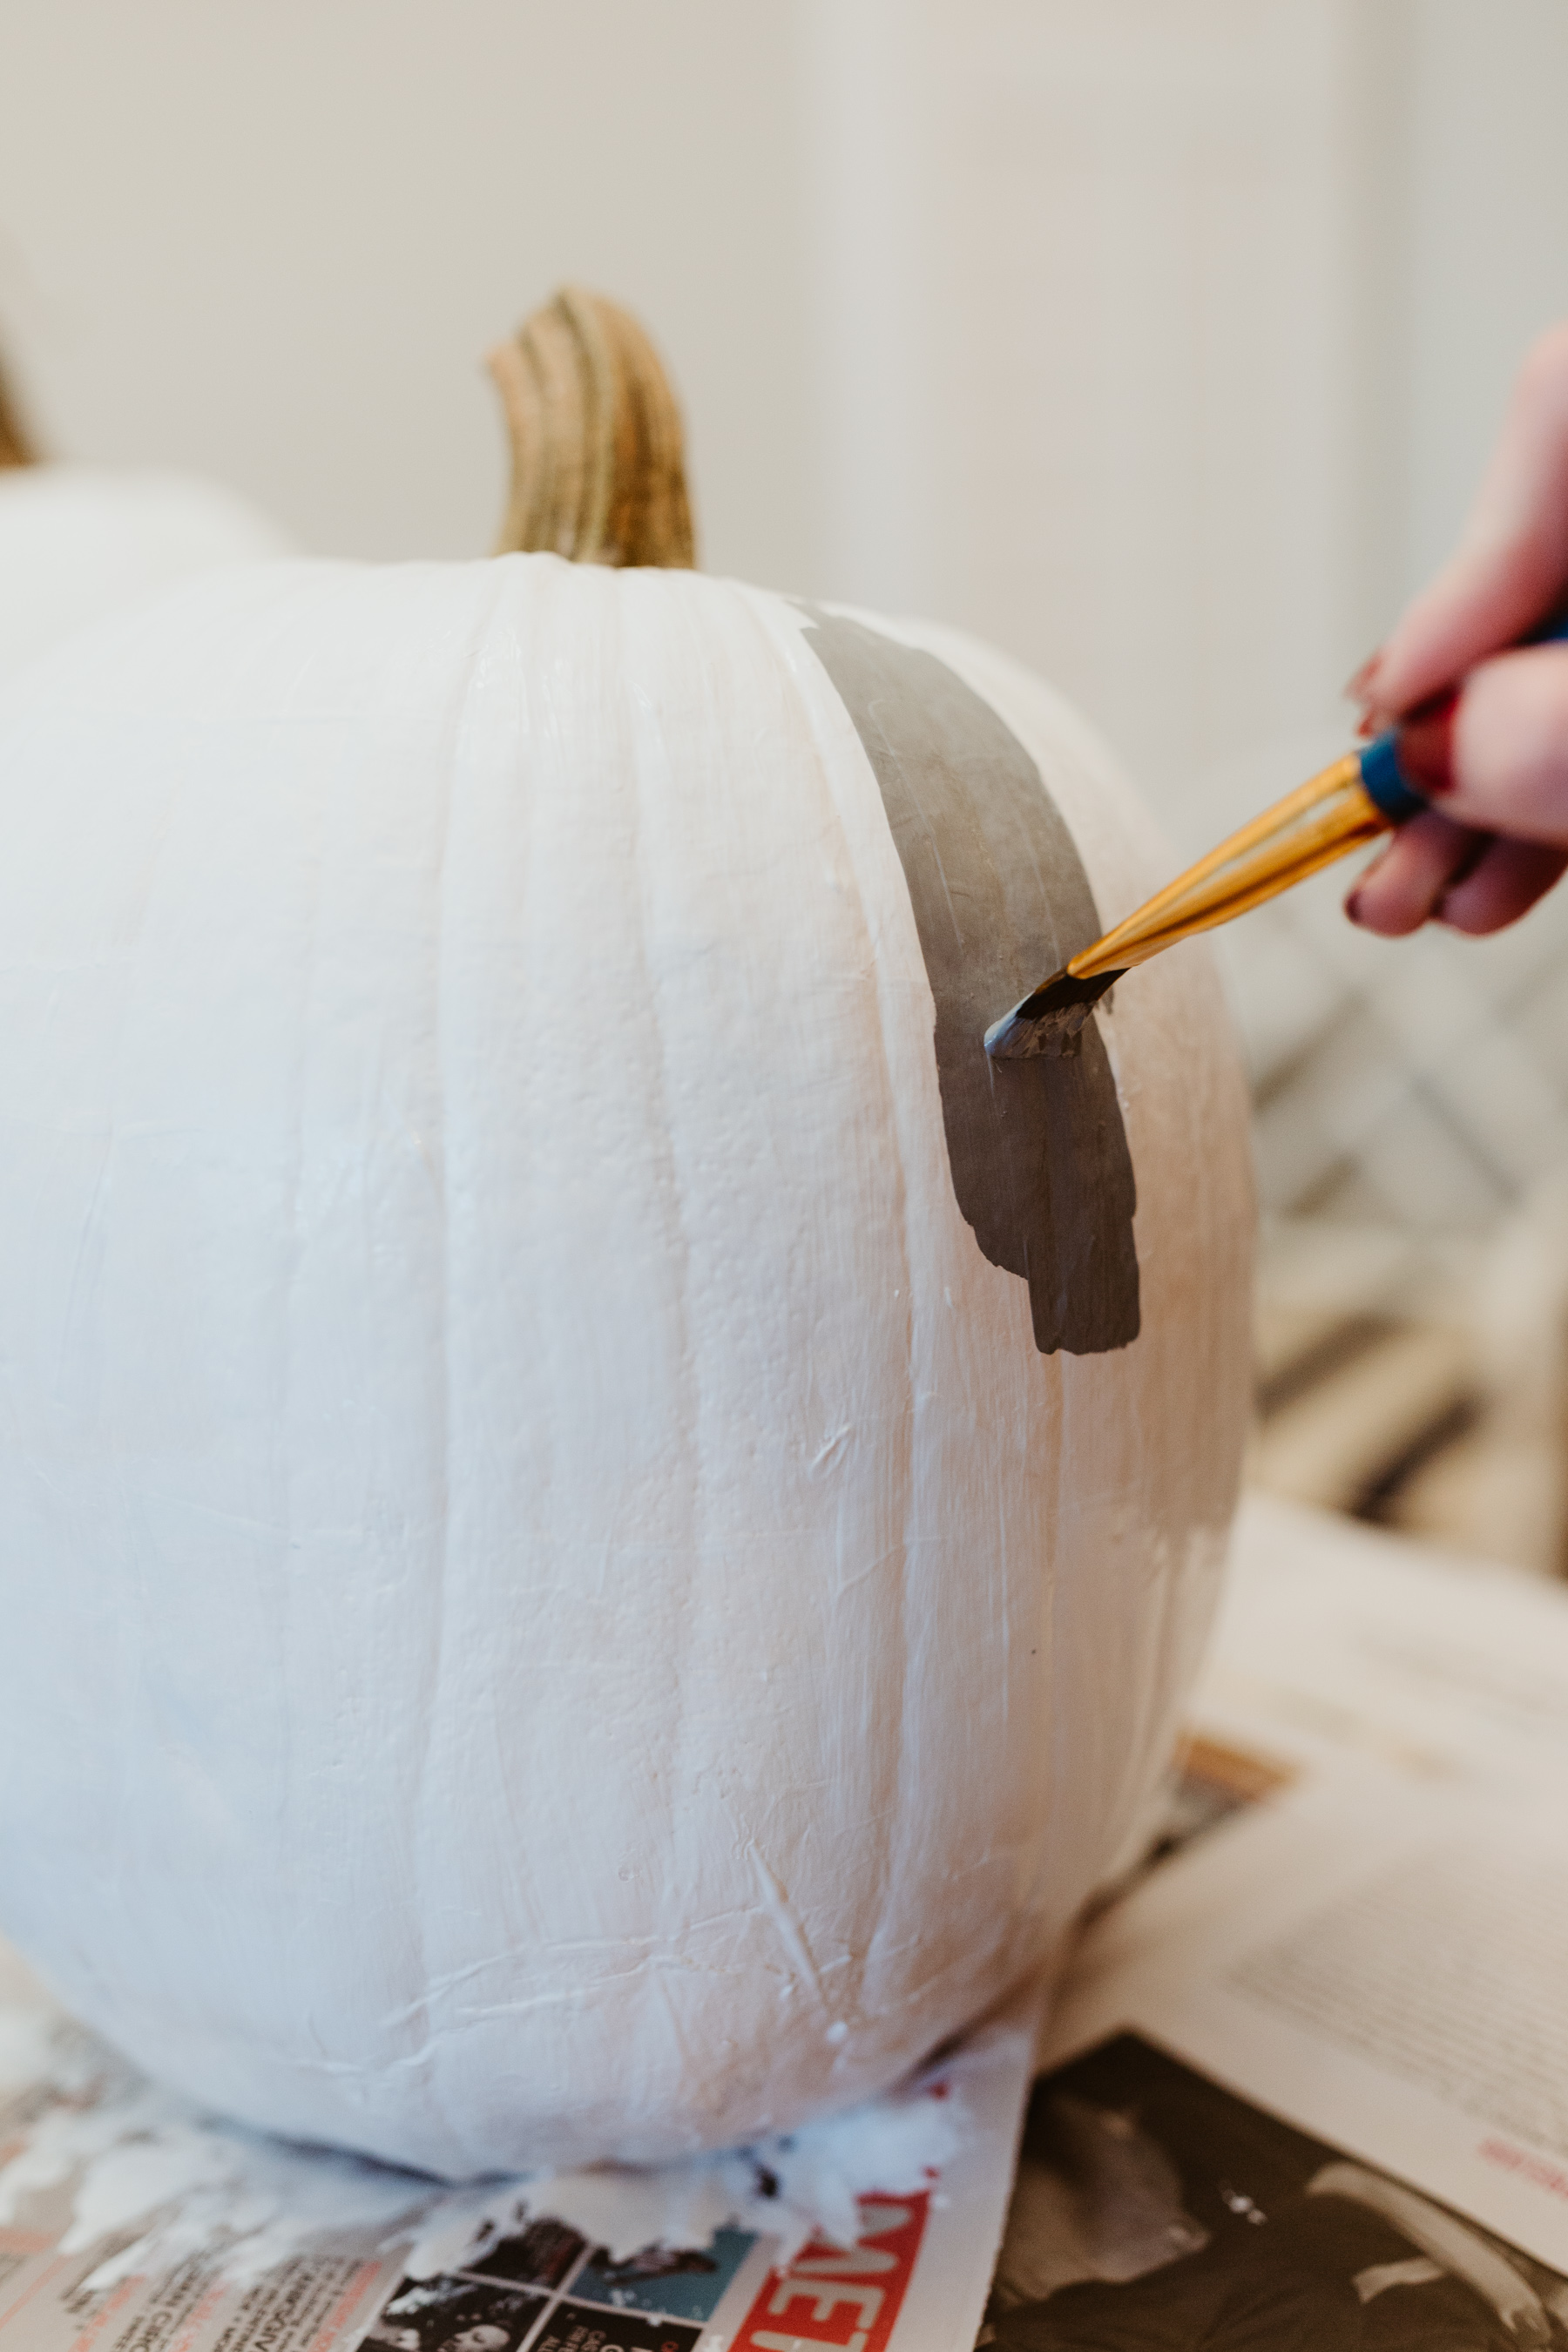 Buffalo plaid pumpkin: Start by painting the pumpkin white. We used acrylic paint we found on Amazon.